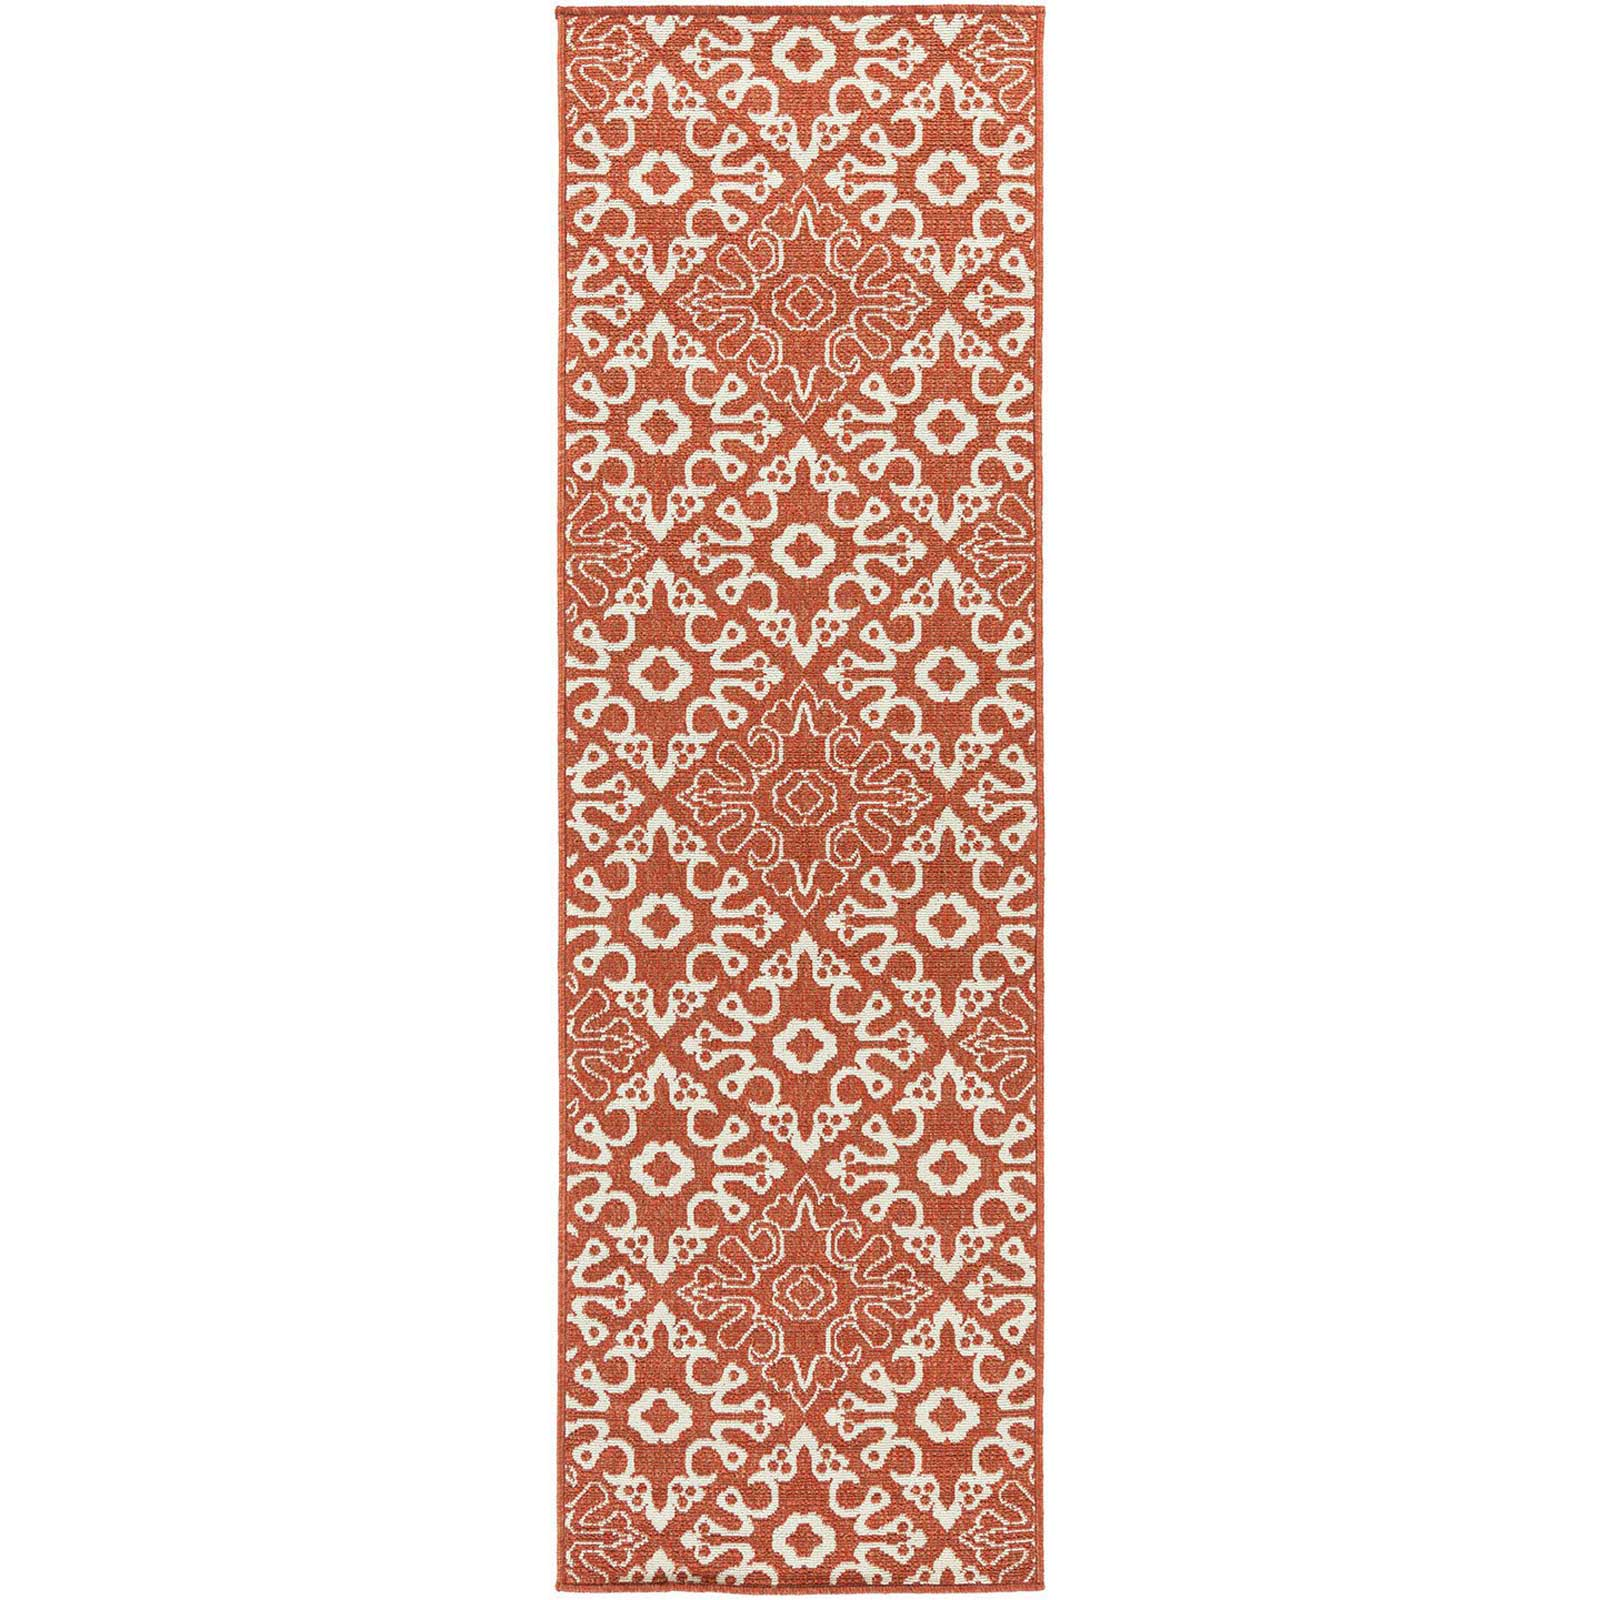 Alfresco Cherry/Beige Runner Rug